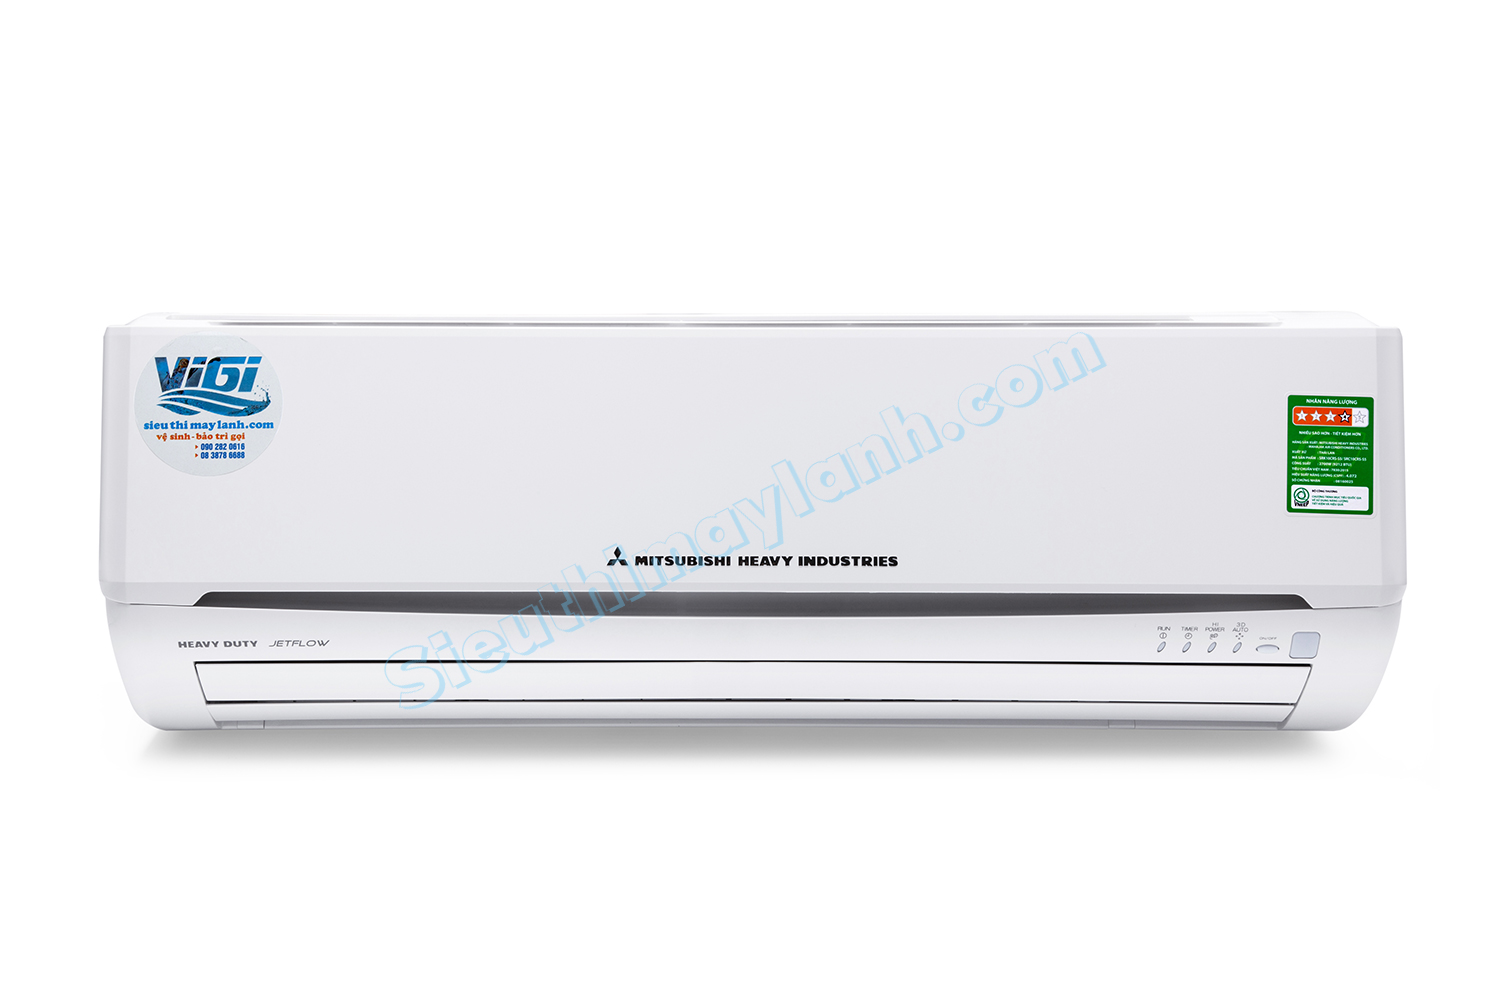 Indoor Unit Wall Mounted AC Multi Mitsubishi Heavy SRK25ZM S (1.0Hp)  Inverter